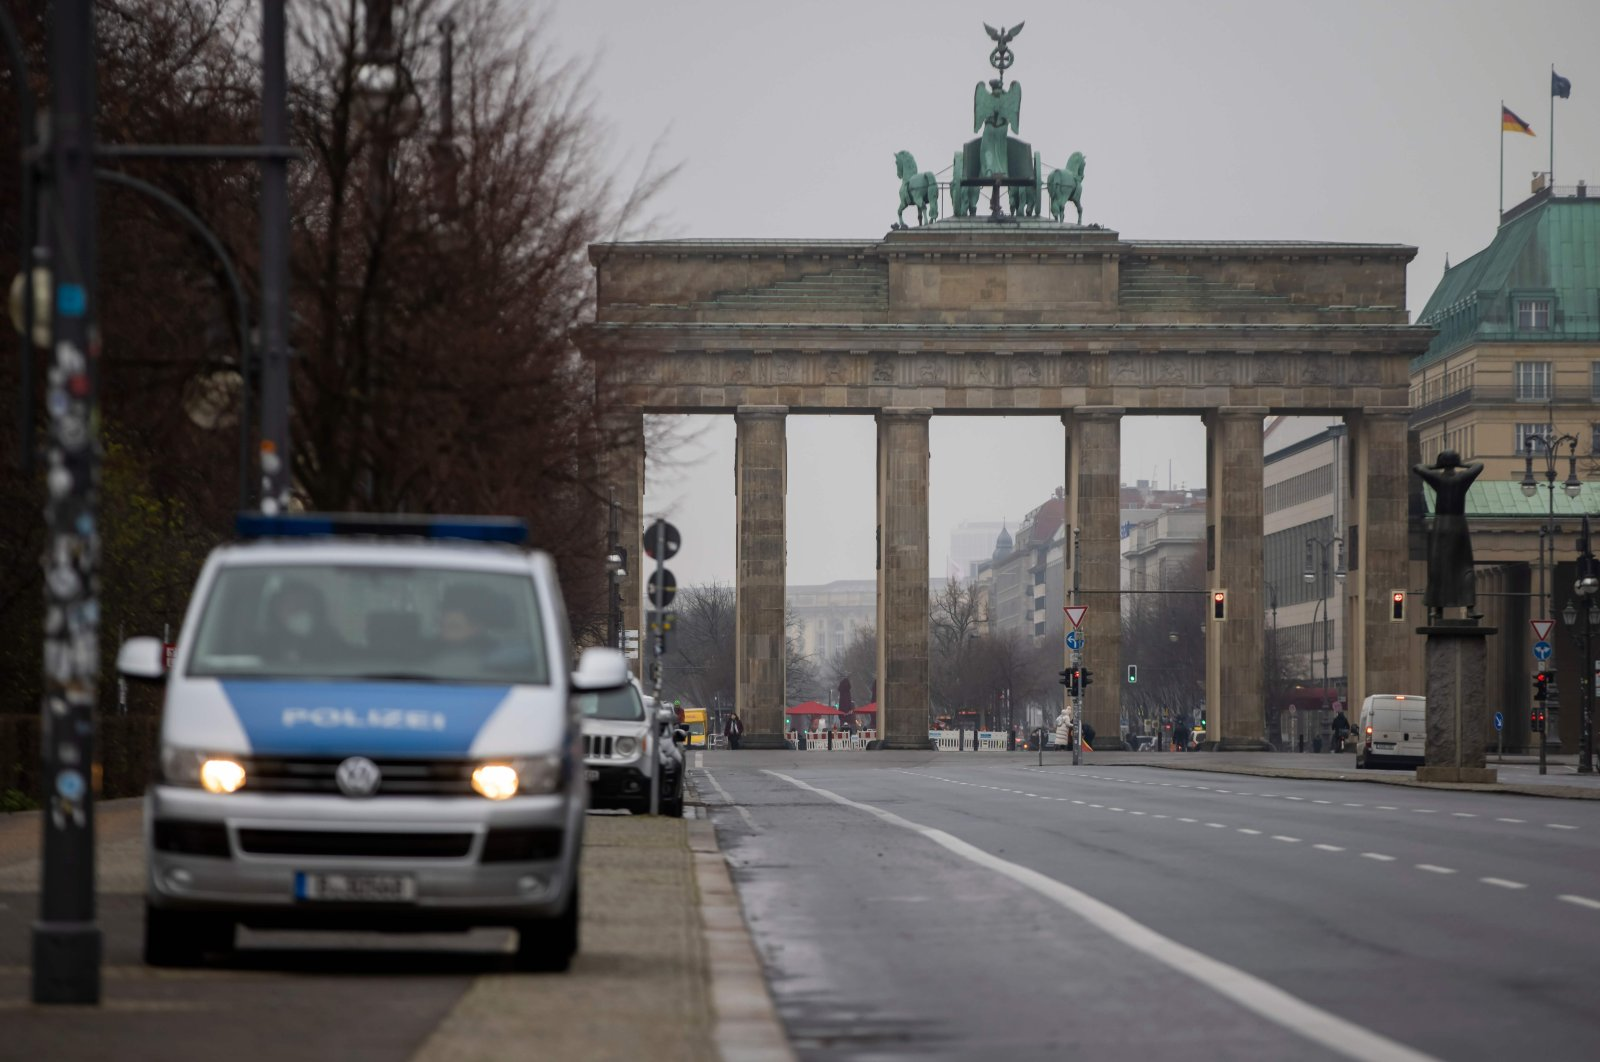 A police vehicle is seen at a virtually empty 17th of June street boulevard leading up to landmark Brandenburger Gate in Berlin, on Jan. 5, 2021. (AFP Photo)